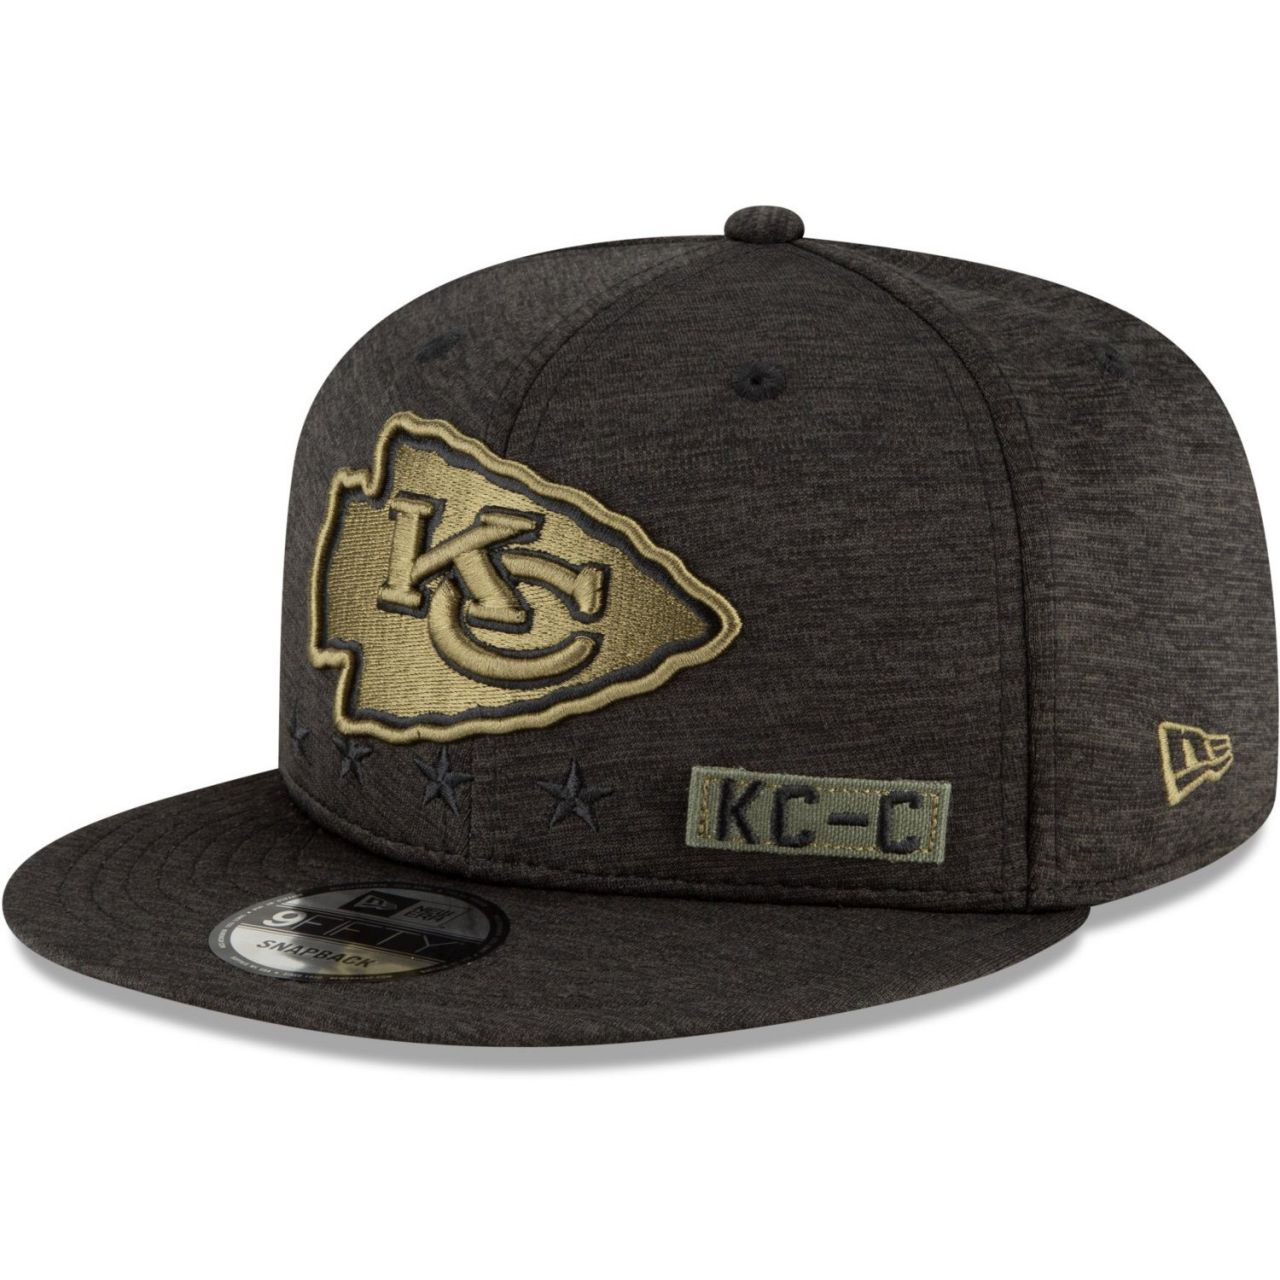 amfoo - New Era 9FIFTY Cap Salute to Service Kansas City Chiefs